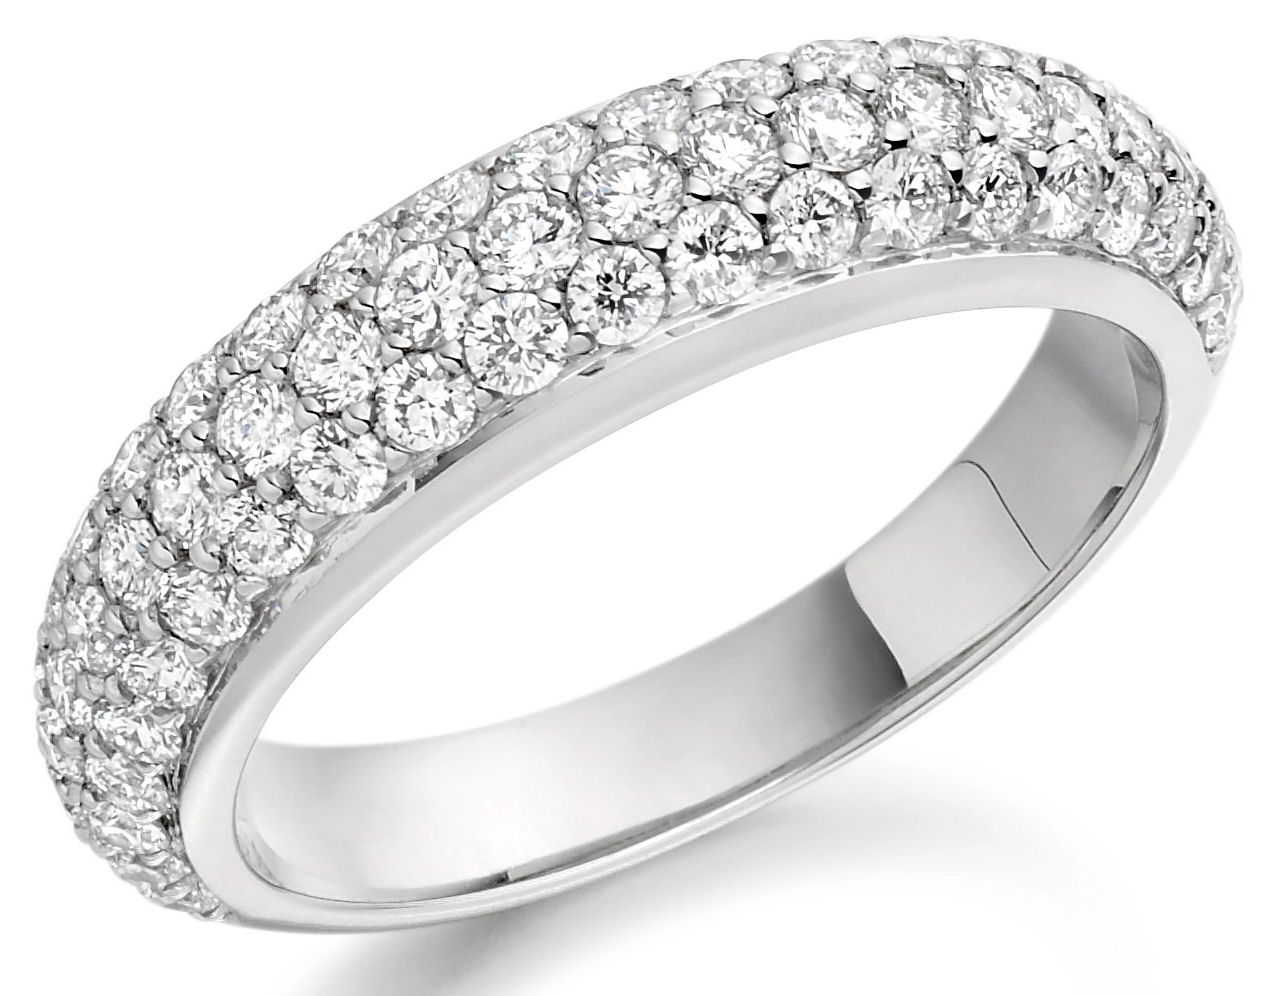 affordable engagement rings how find them pave diamond wedding band Pave Diamond Ring